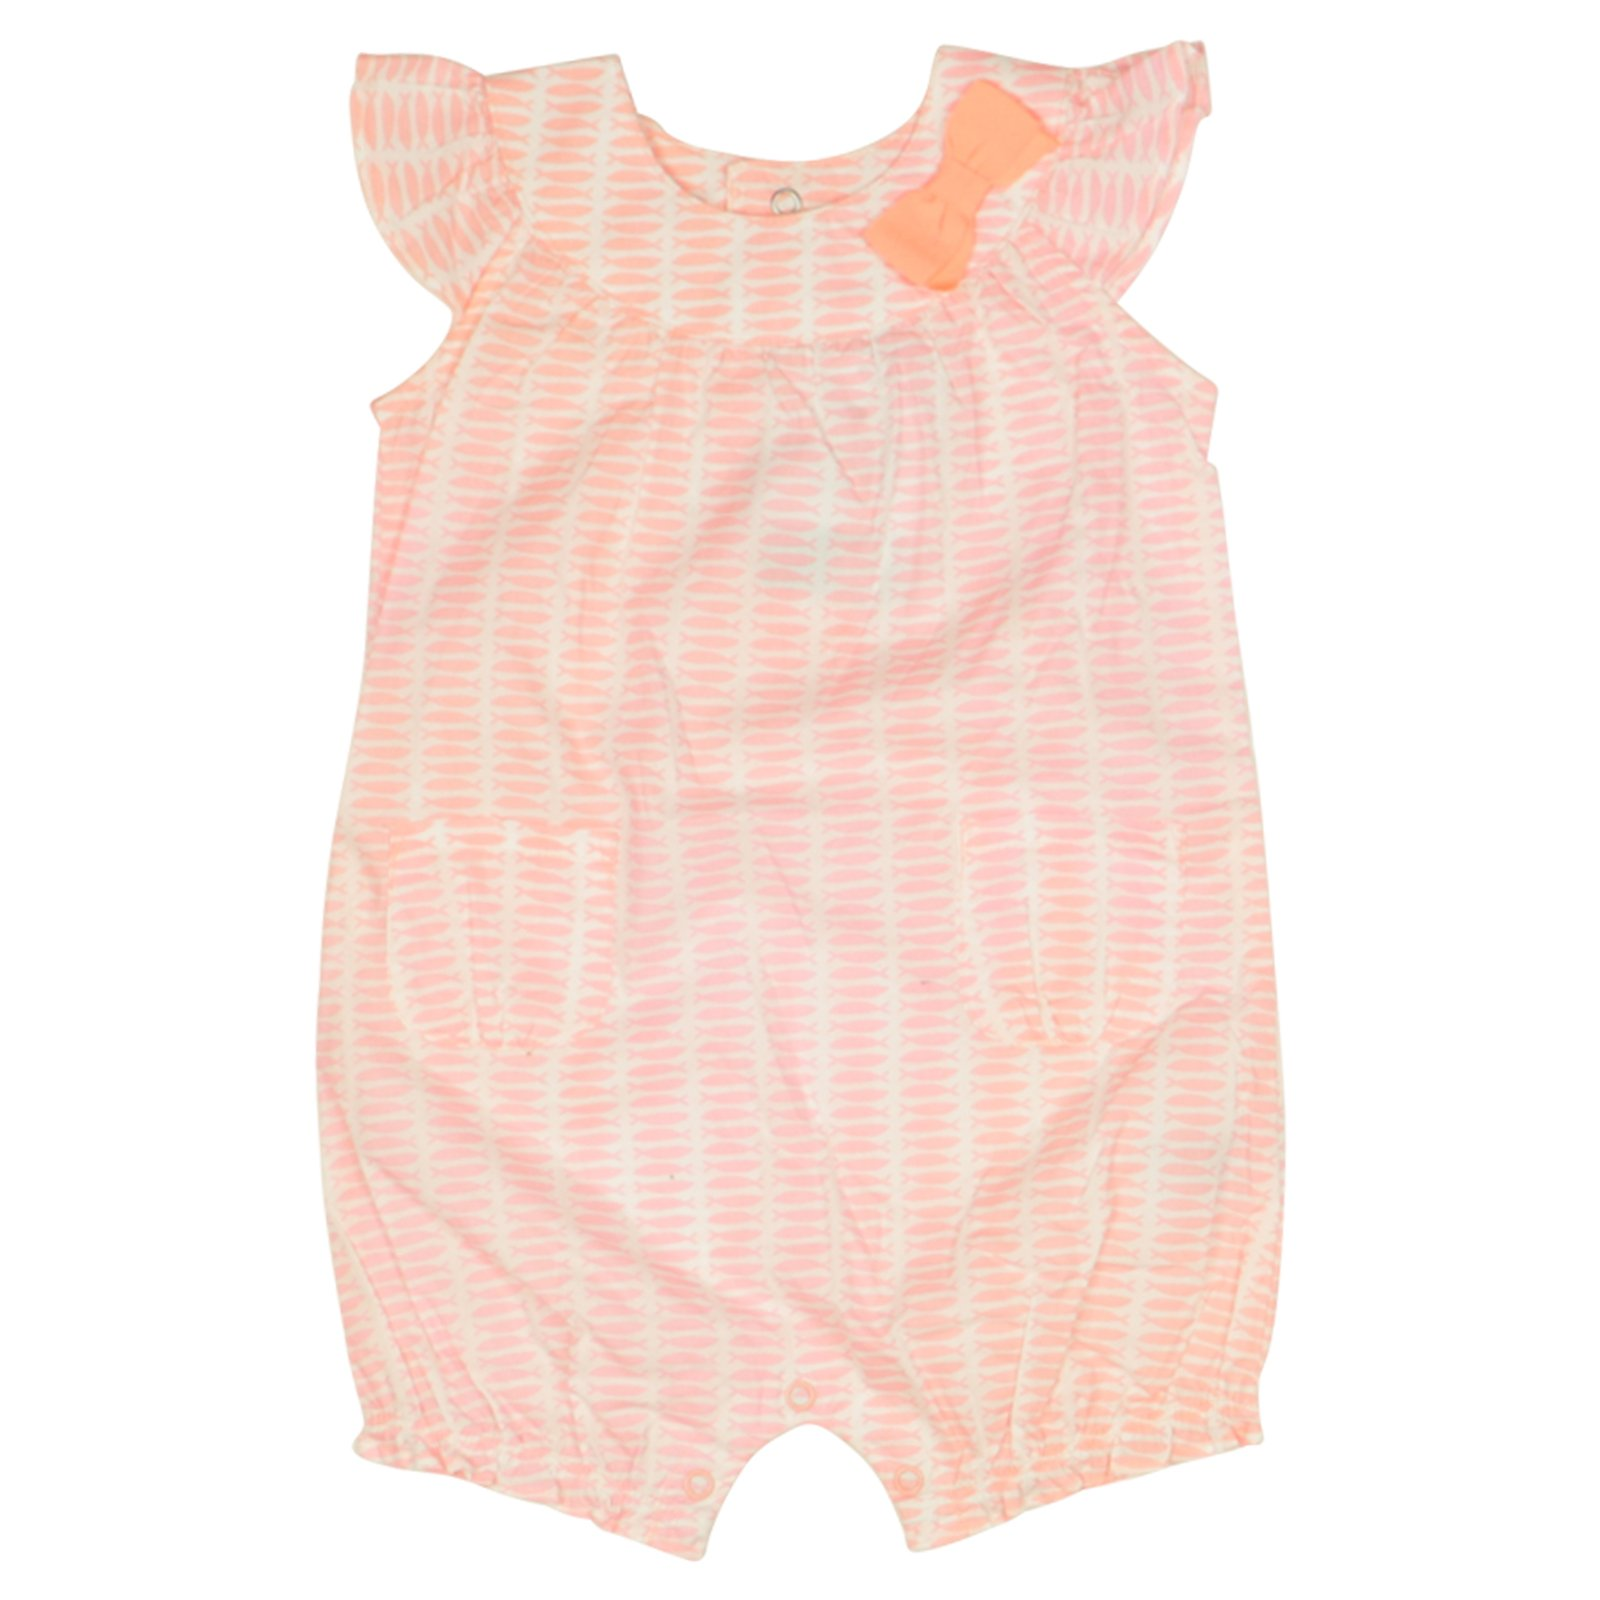 Carters Girls One-Piece Romper 12 Months Pink